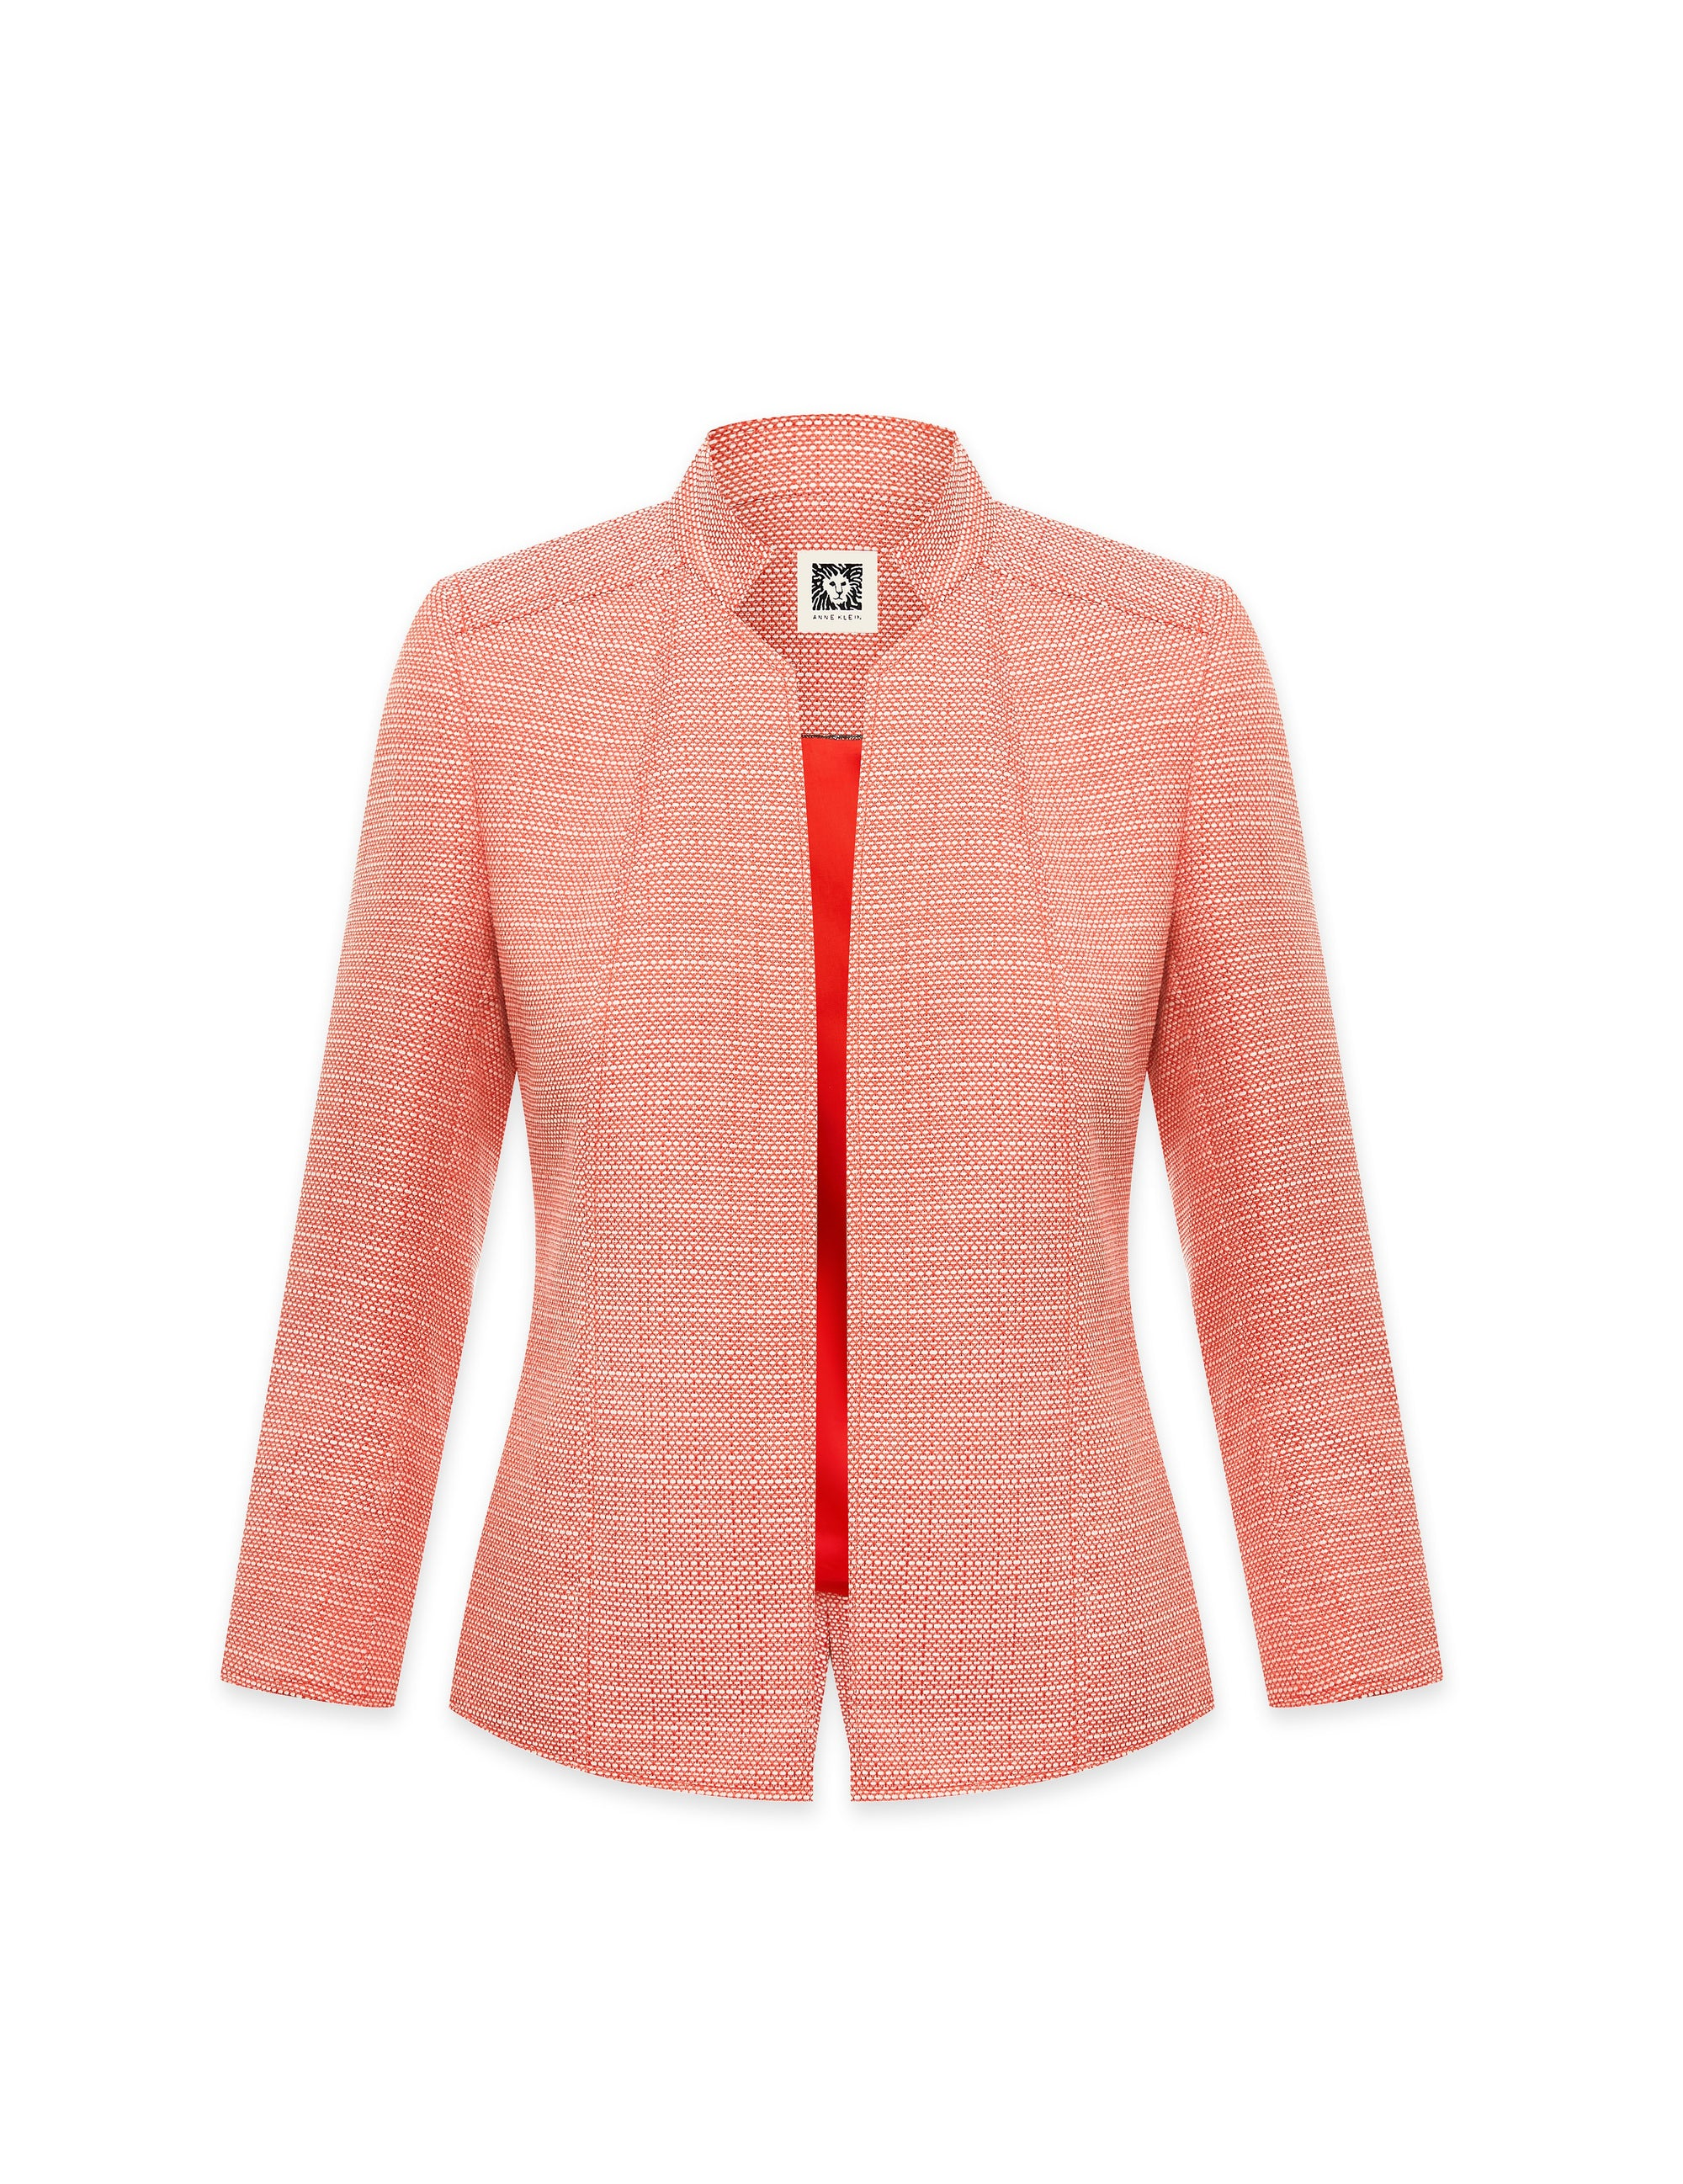 Anne Klein Ridge Crest Tweed Stand Collar Jacket Poppy/White